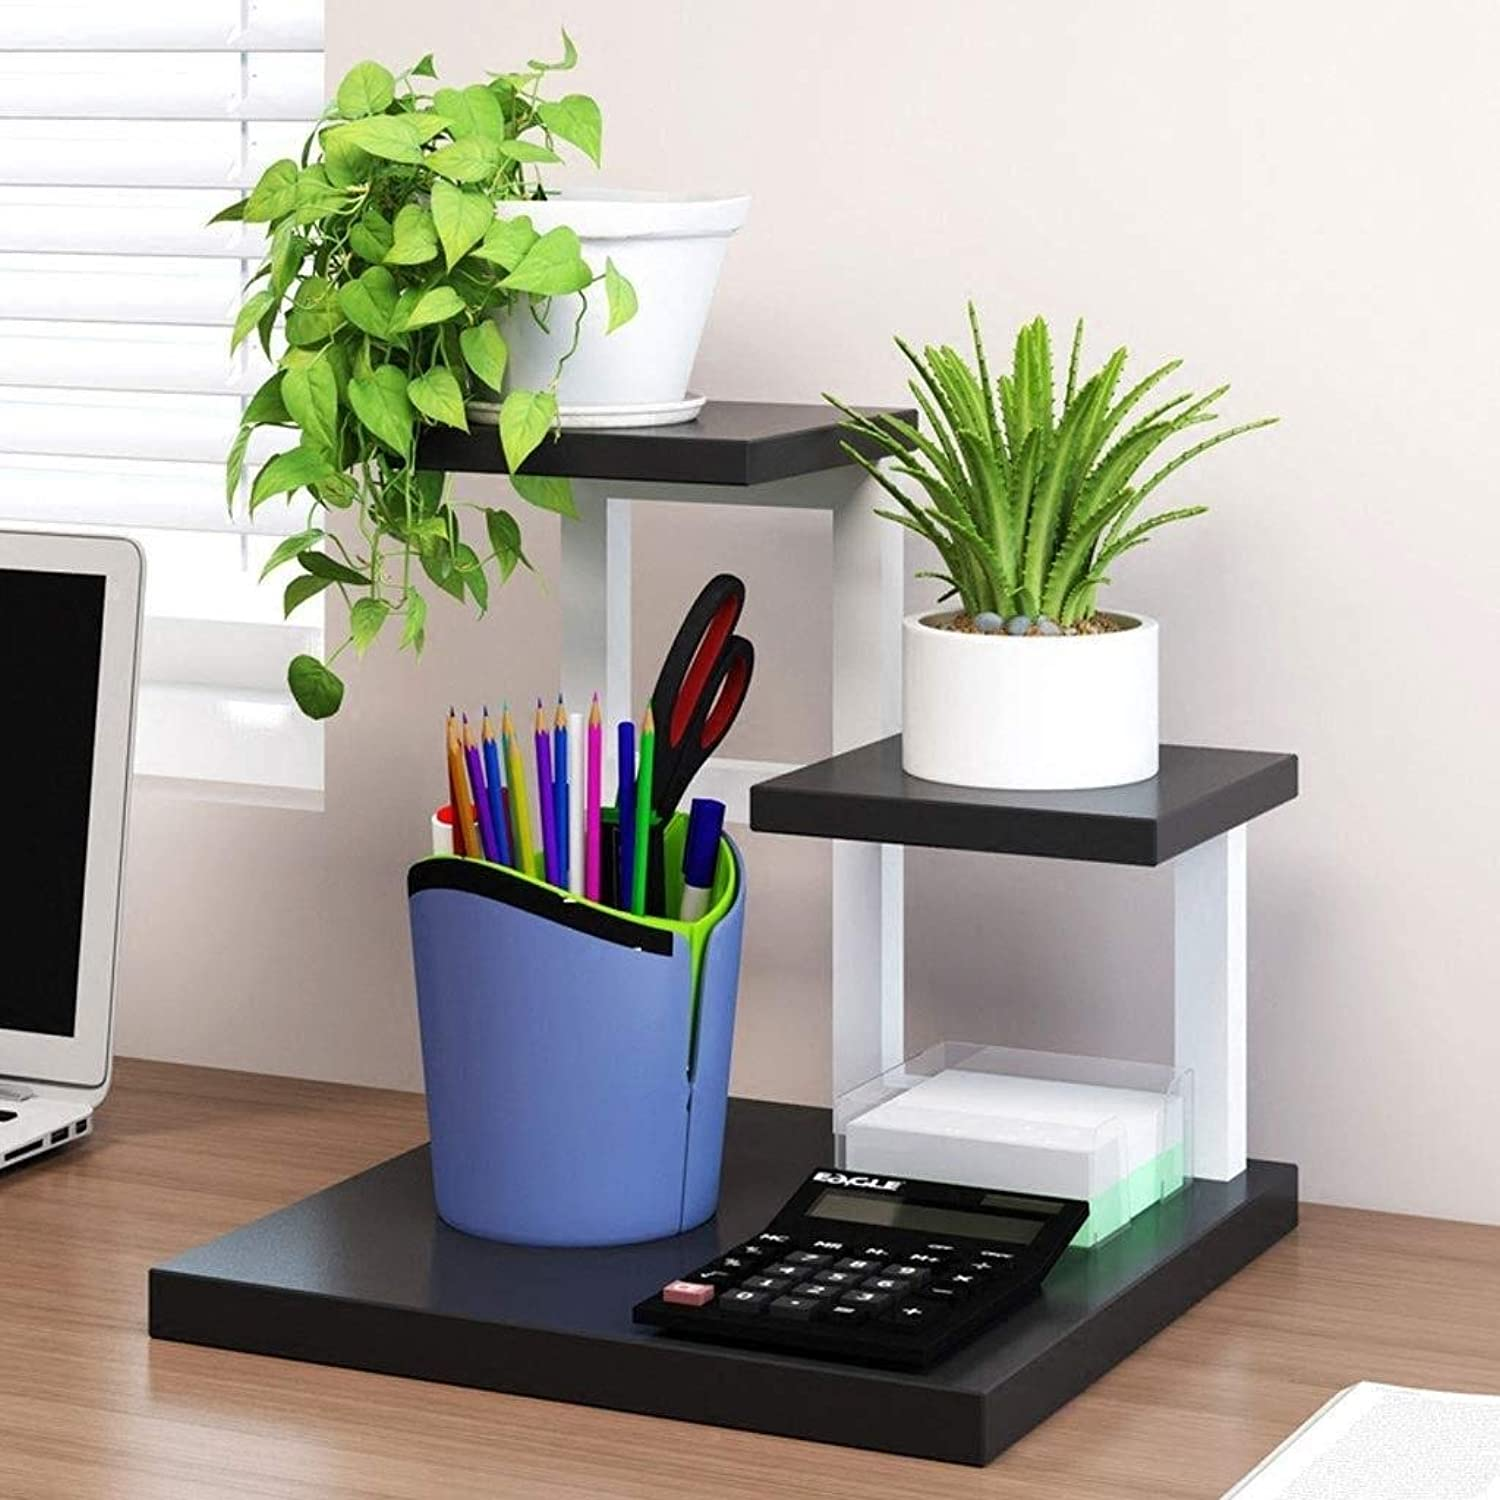 Flower Stand - Desktop Plant Flower Pot Display Stand, Storage Rack, Multi-Layer Multi-Purpose Shelf (White, Log color; 30  30  28cm) (color   B)